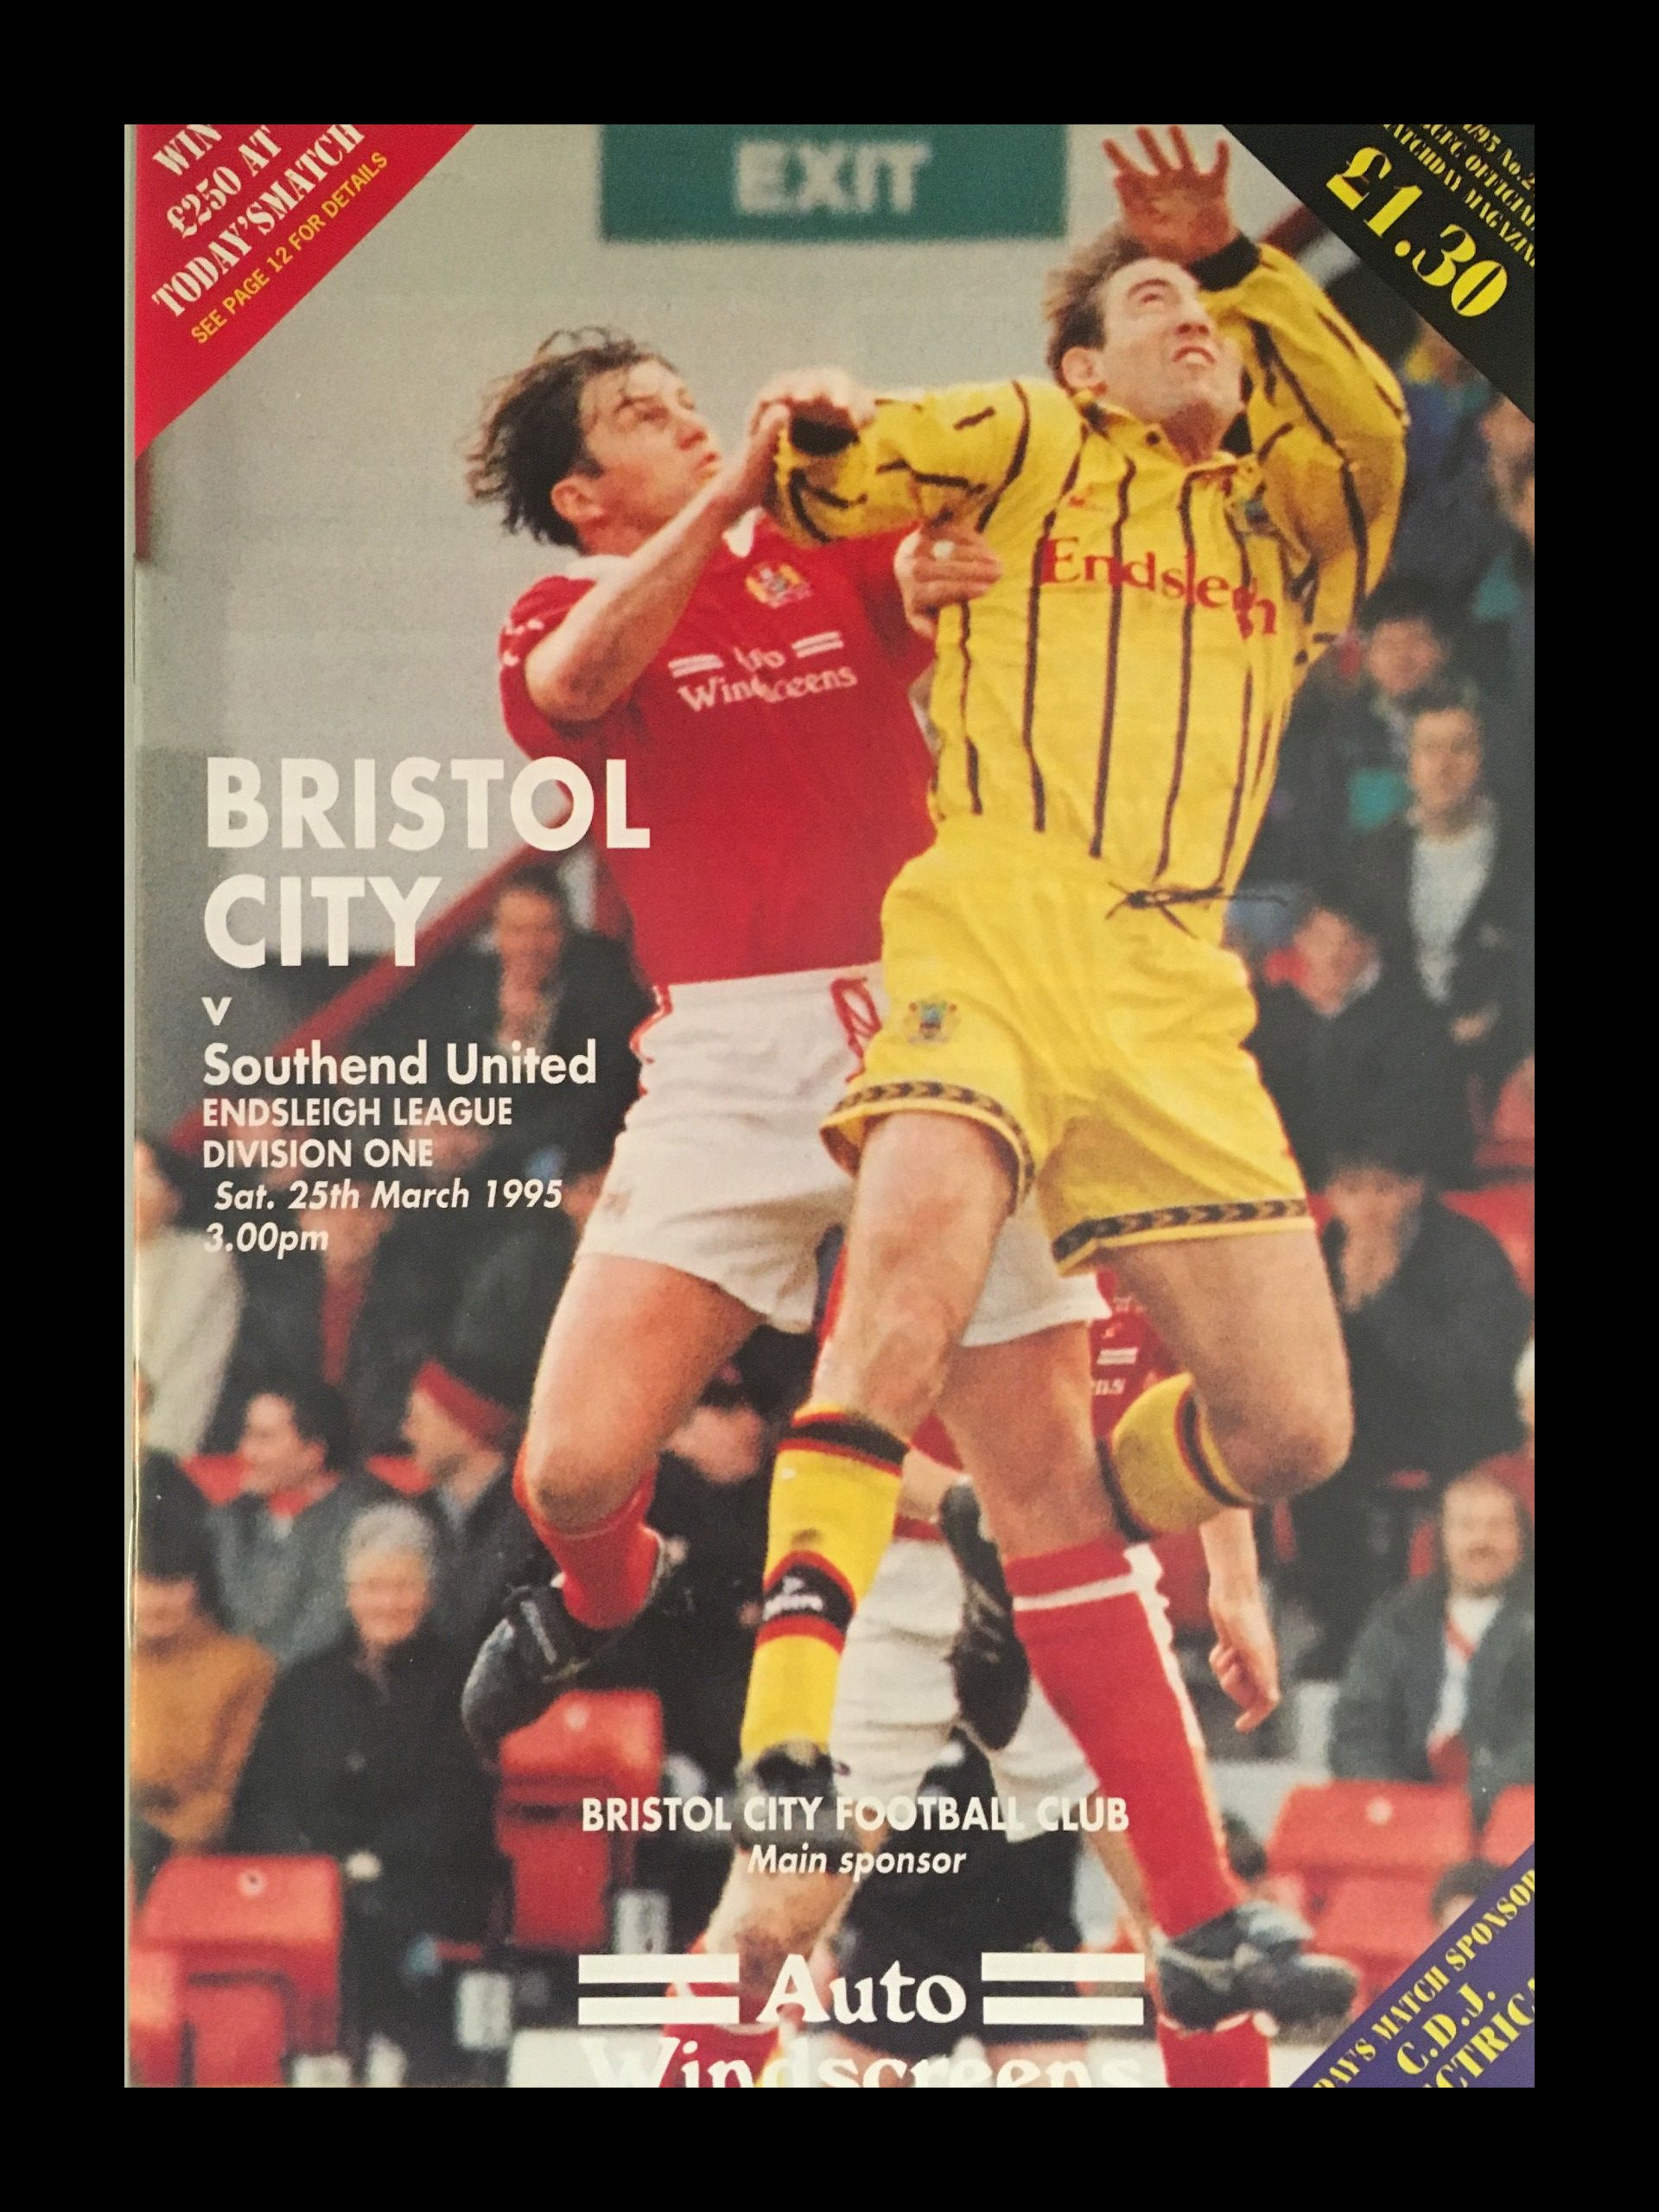 Bristol City v Southend United 25-03-1995 Programme